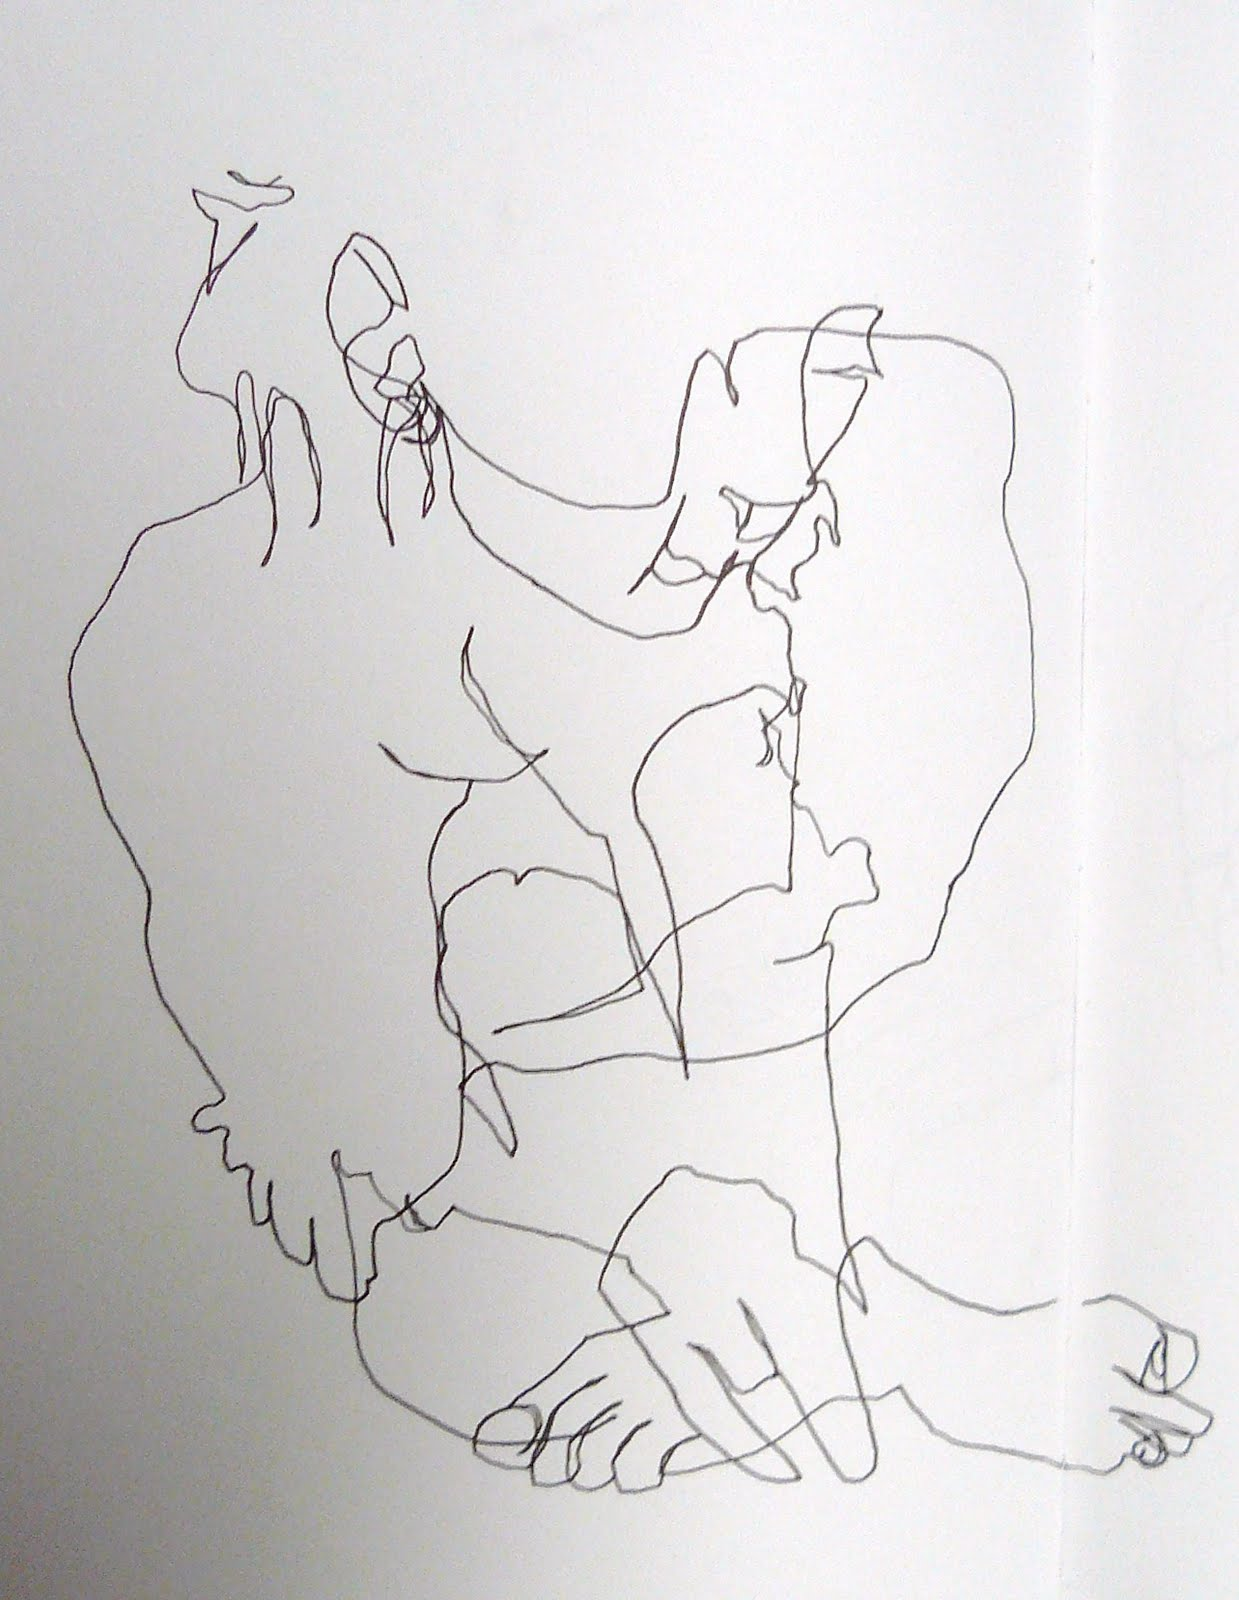 Contour Line Drawing Demo : Sharon draws blind contour line drawing